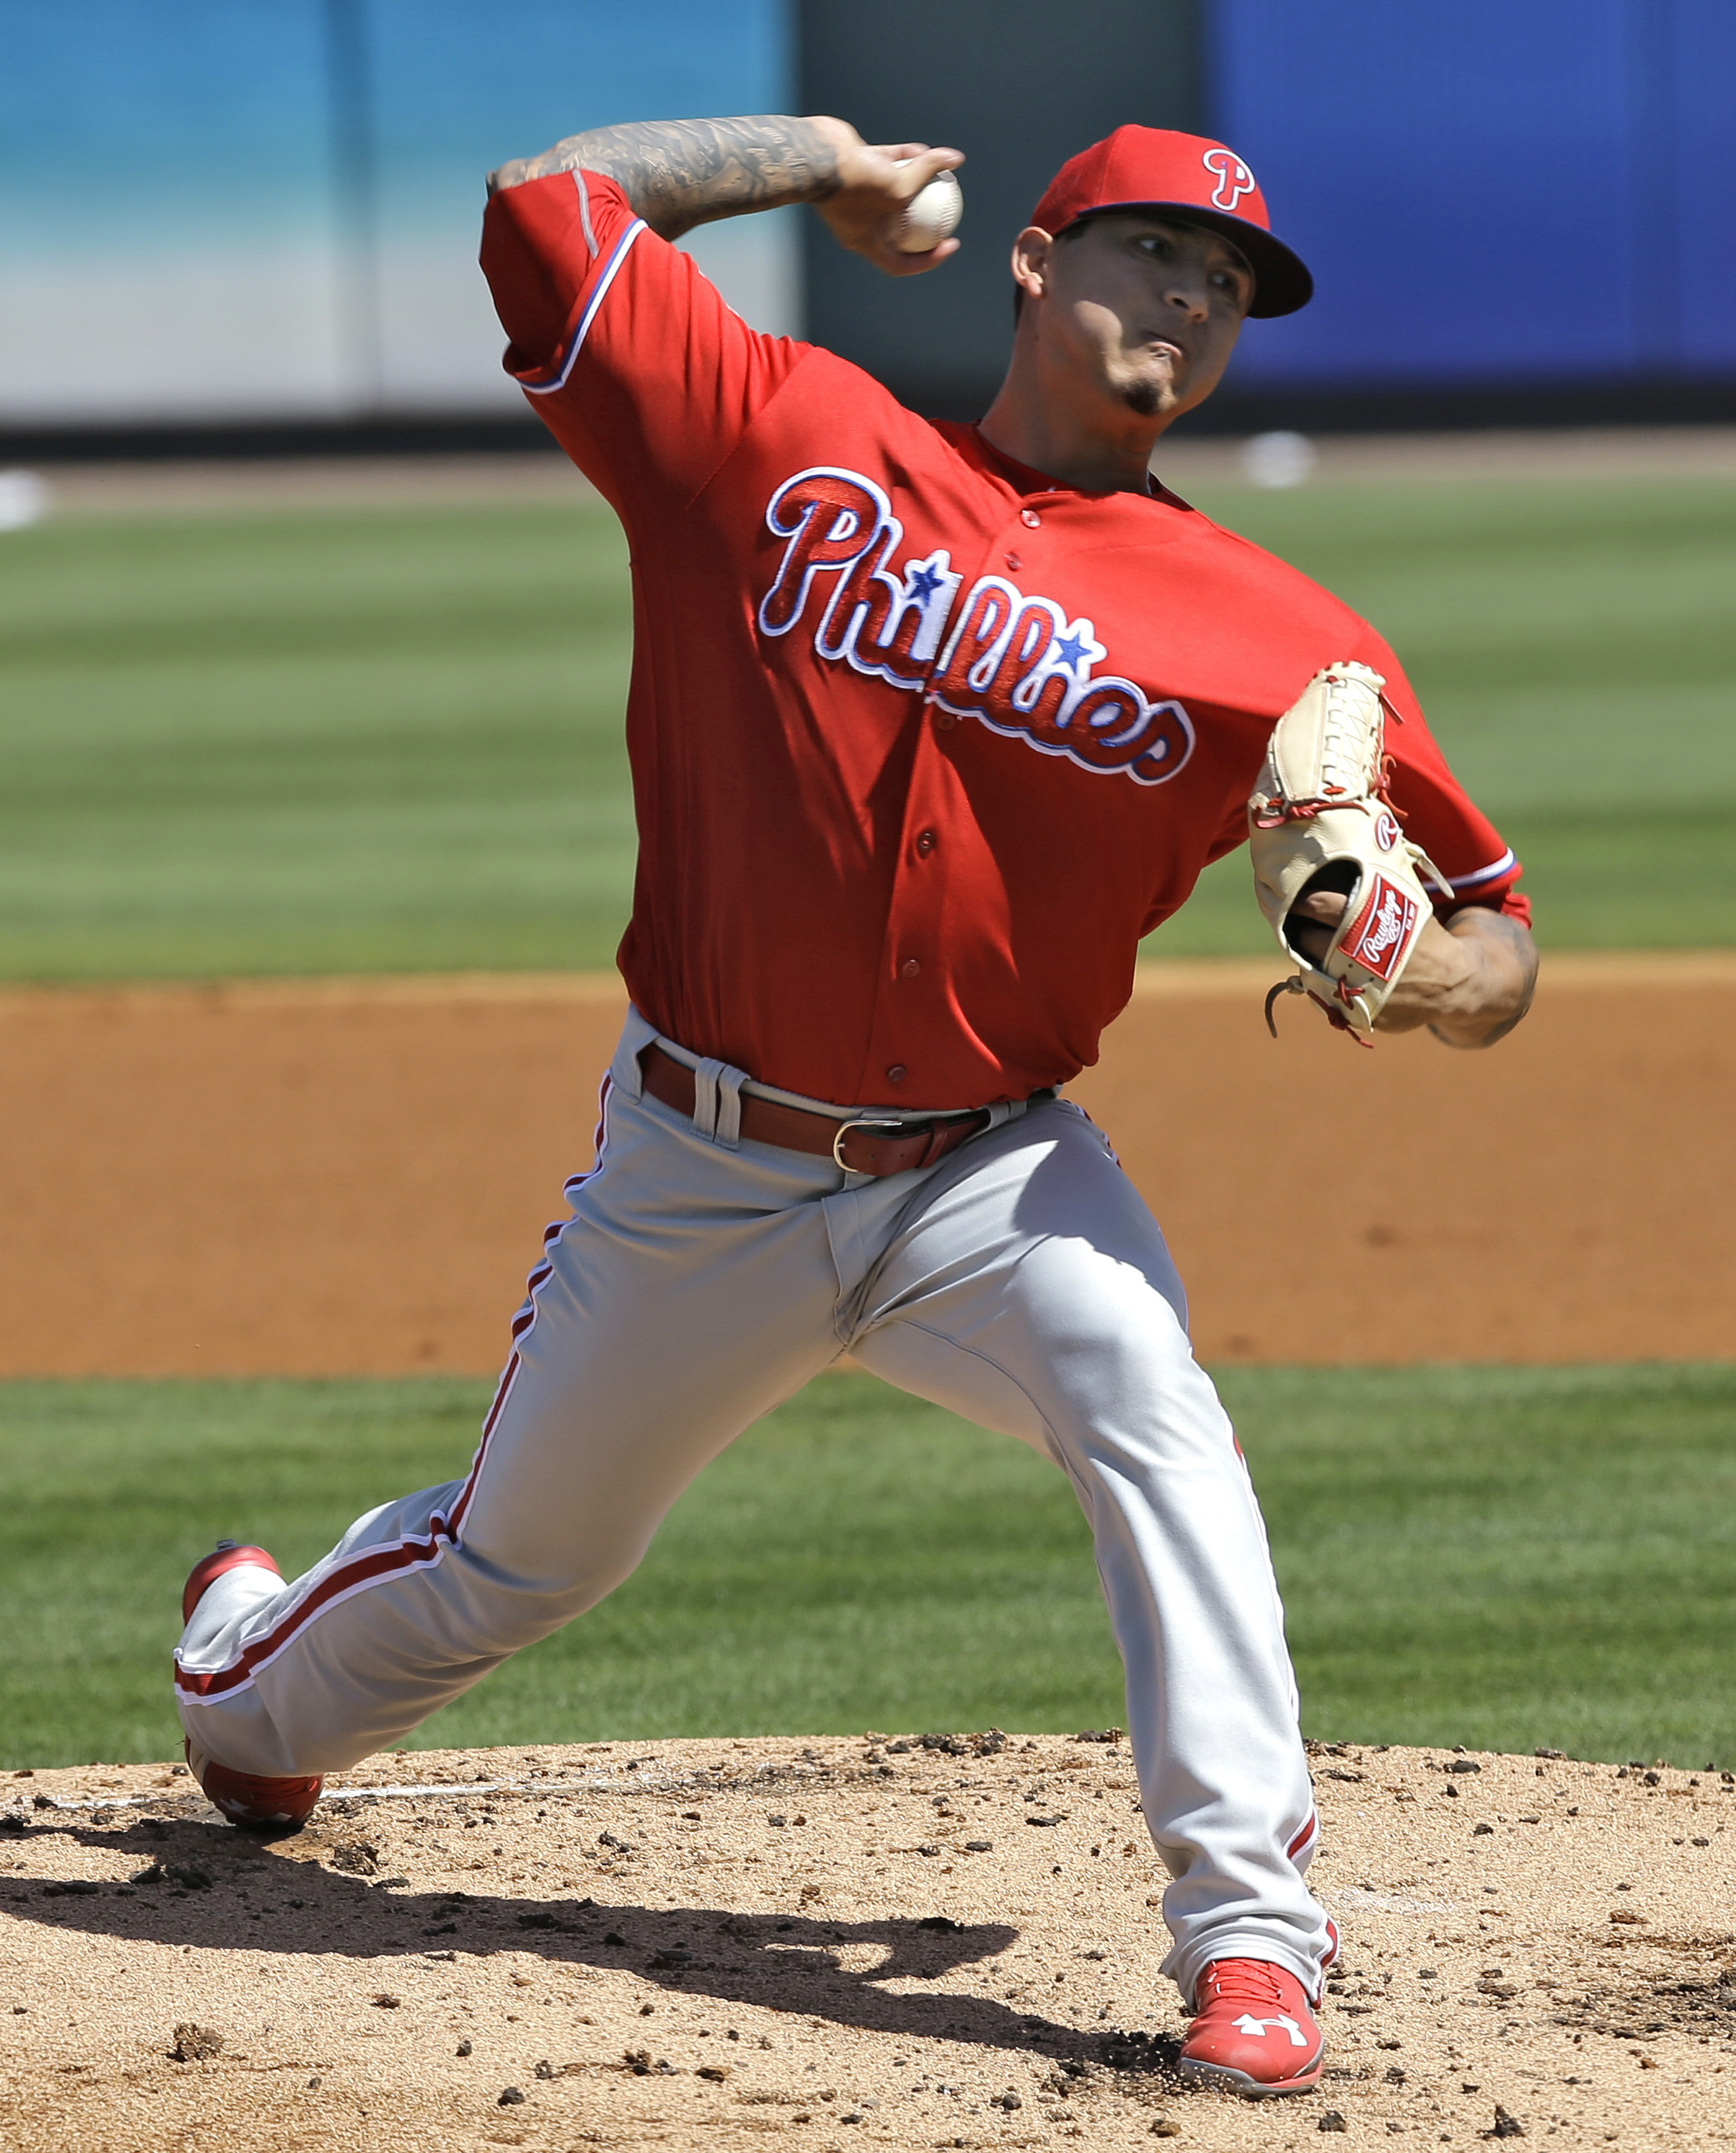 Philadelphia Phillies pitcher Vincent Velasquez delivers to the Pittsburgh Pirates during the first inning of a spring training baseball game Monday, March 7, 2016, in Tampa, Fla. (AP Photo/Chris O'Meara)